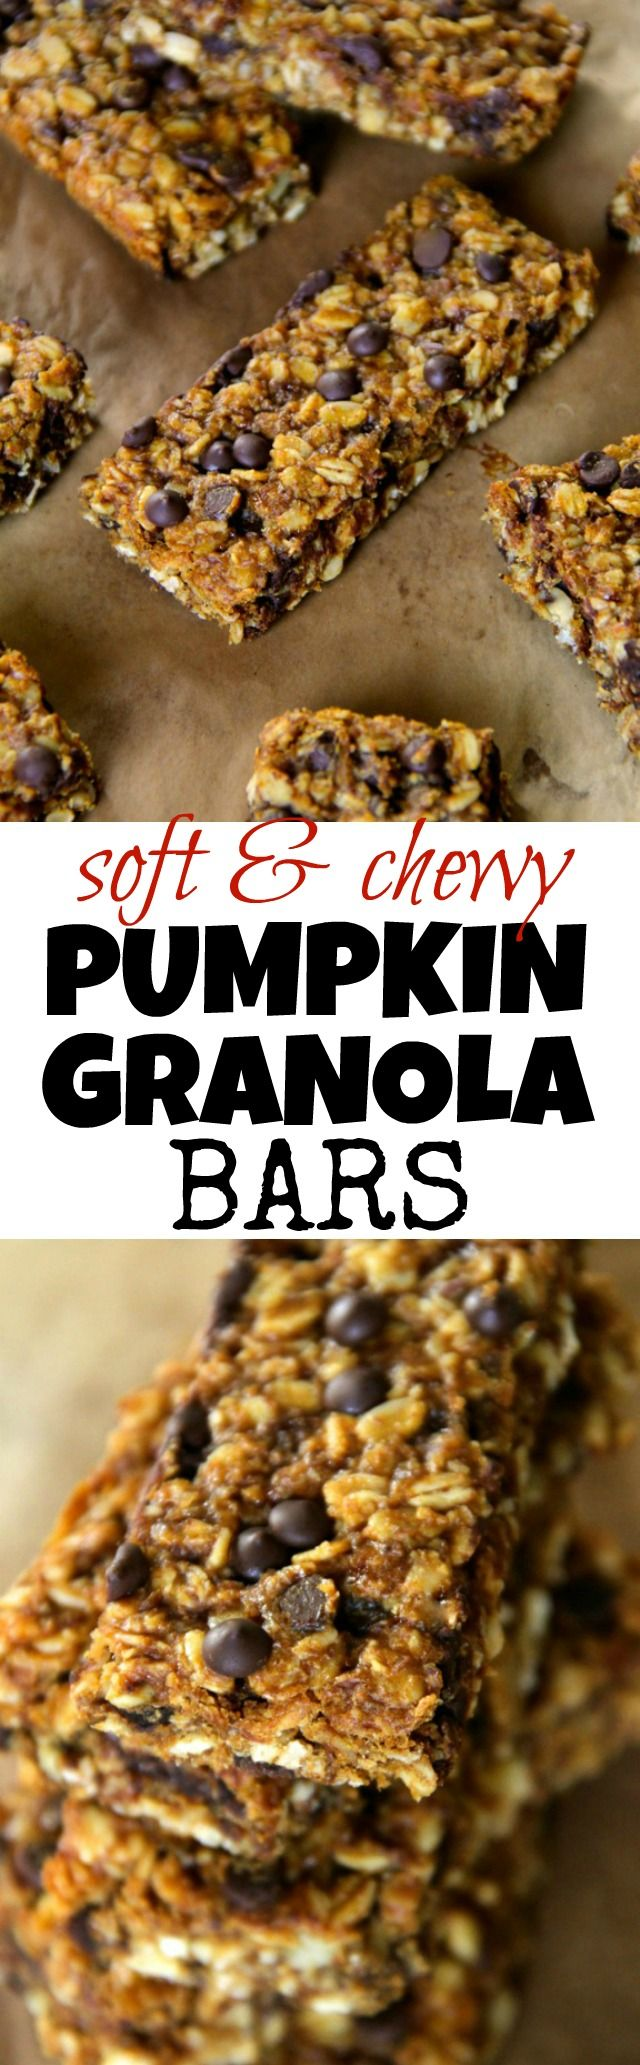 Soft and Chewy Pumpkin Granola Bars -- loaded with oats, pumpkin, chocolate, and warming spices!    runningwithspoons.com #pumpkin #granolabar